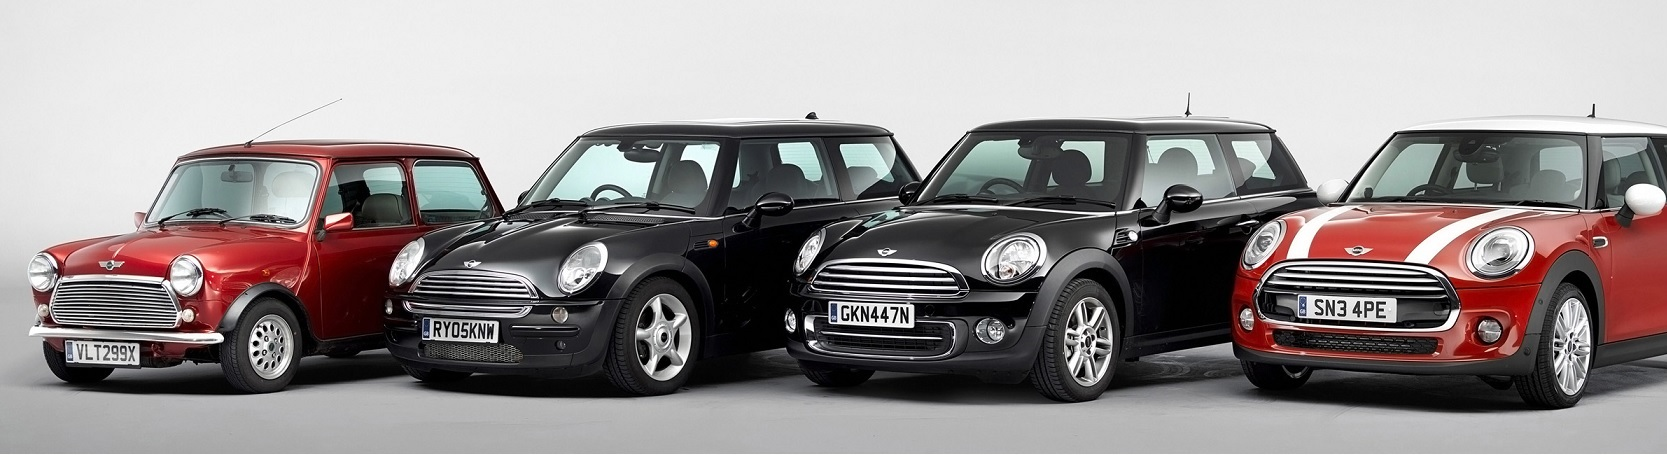 Mini through the ages